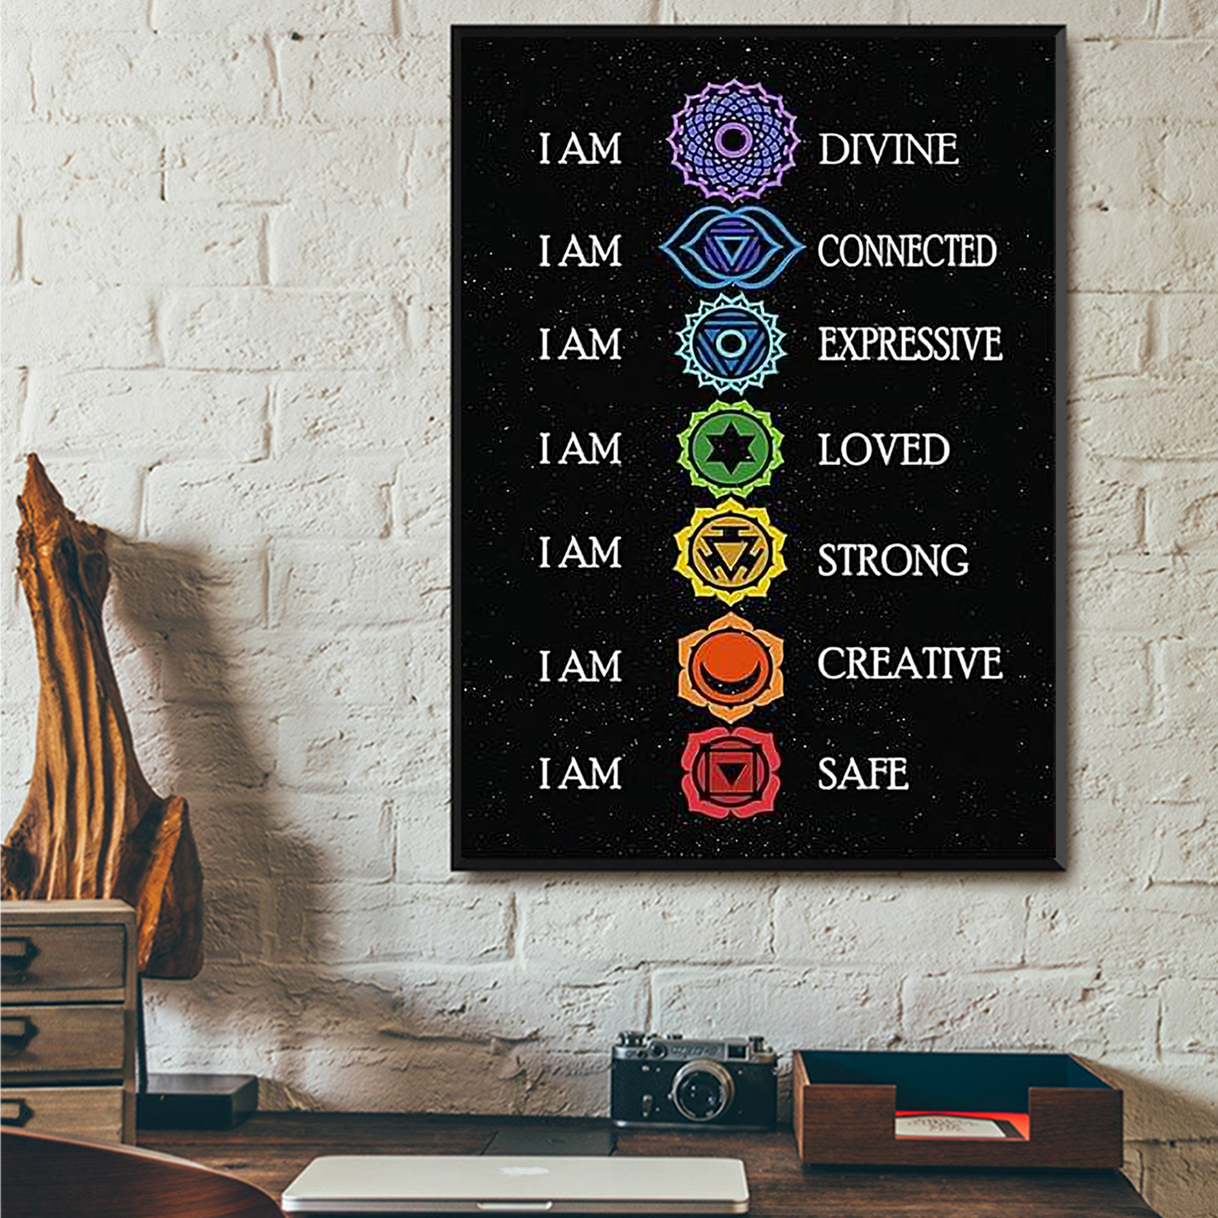 Yoga I am divine I am connected poster A3